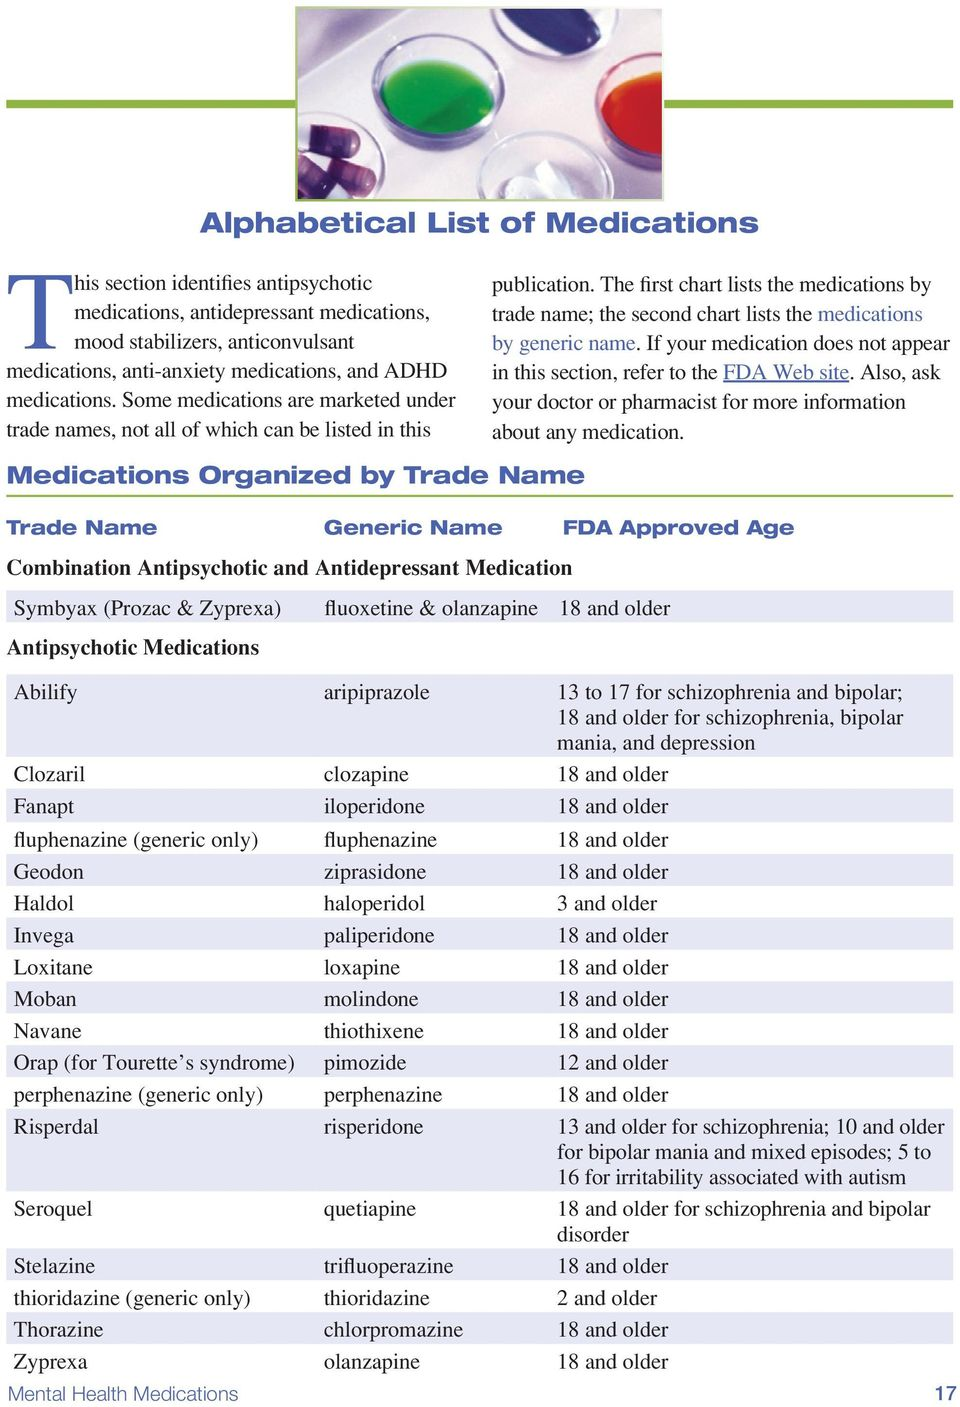 The first chart lists the medications by trade name; the second chart lists the medications by generic name. If your medication does not appear in this section, refer to the FDA Web site.